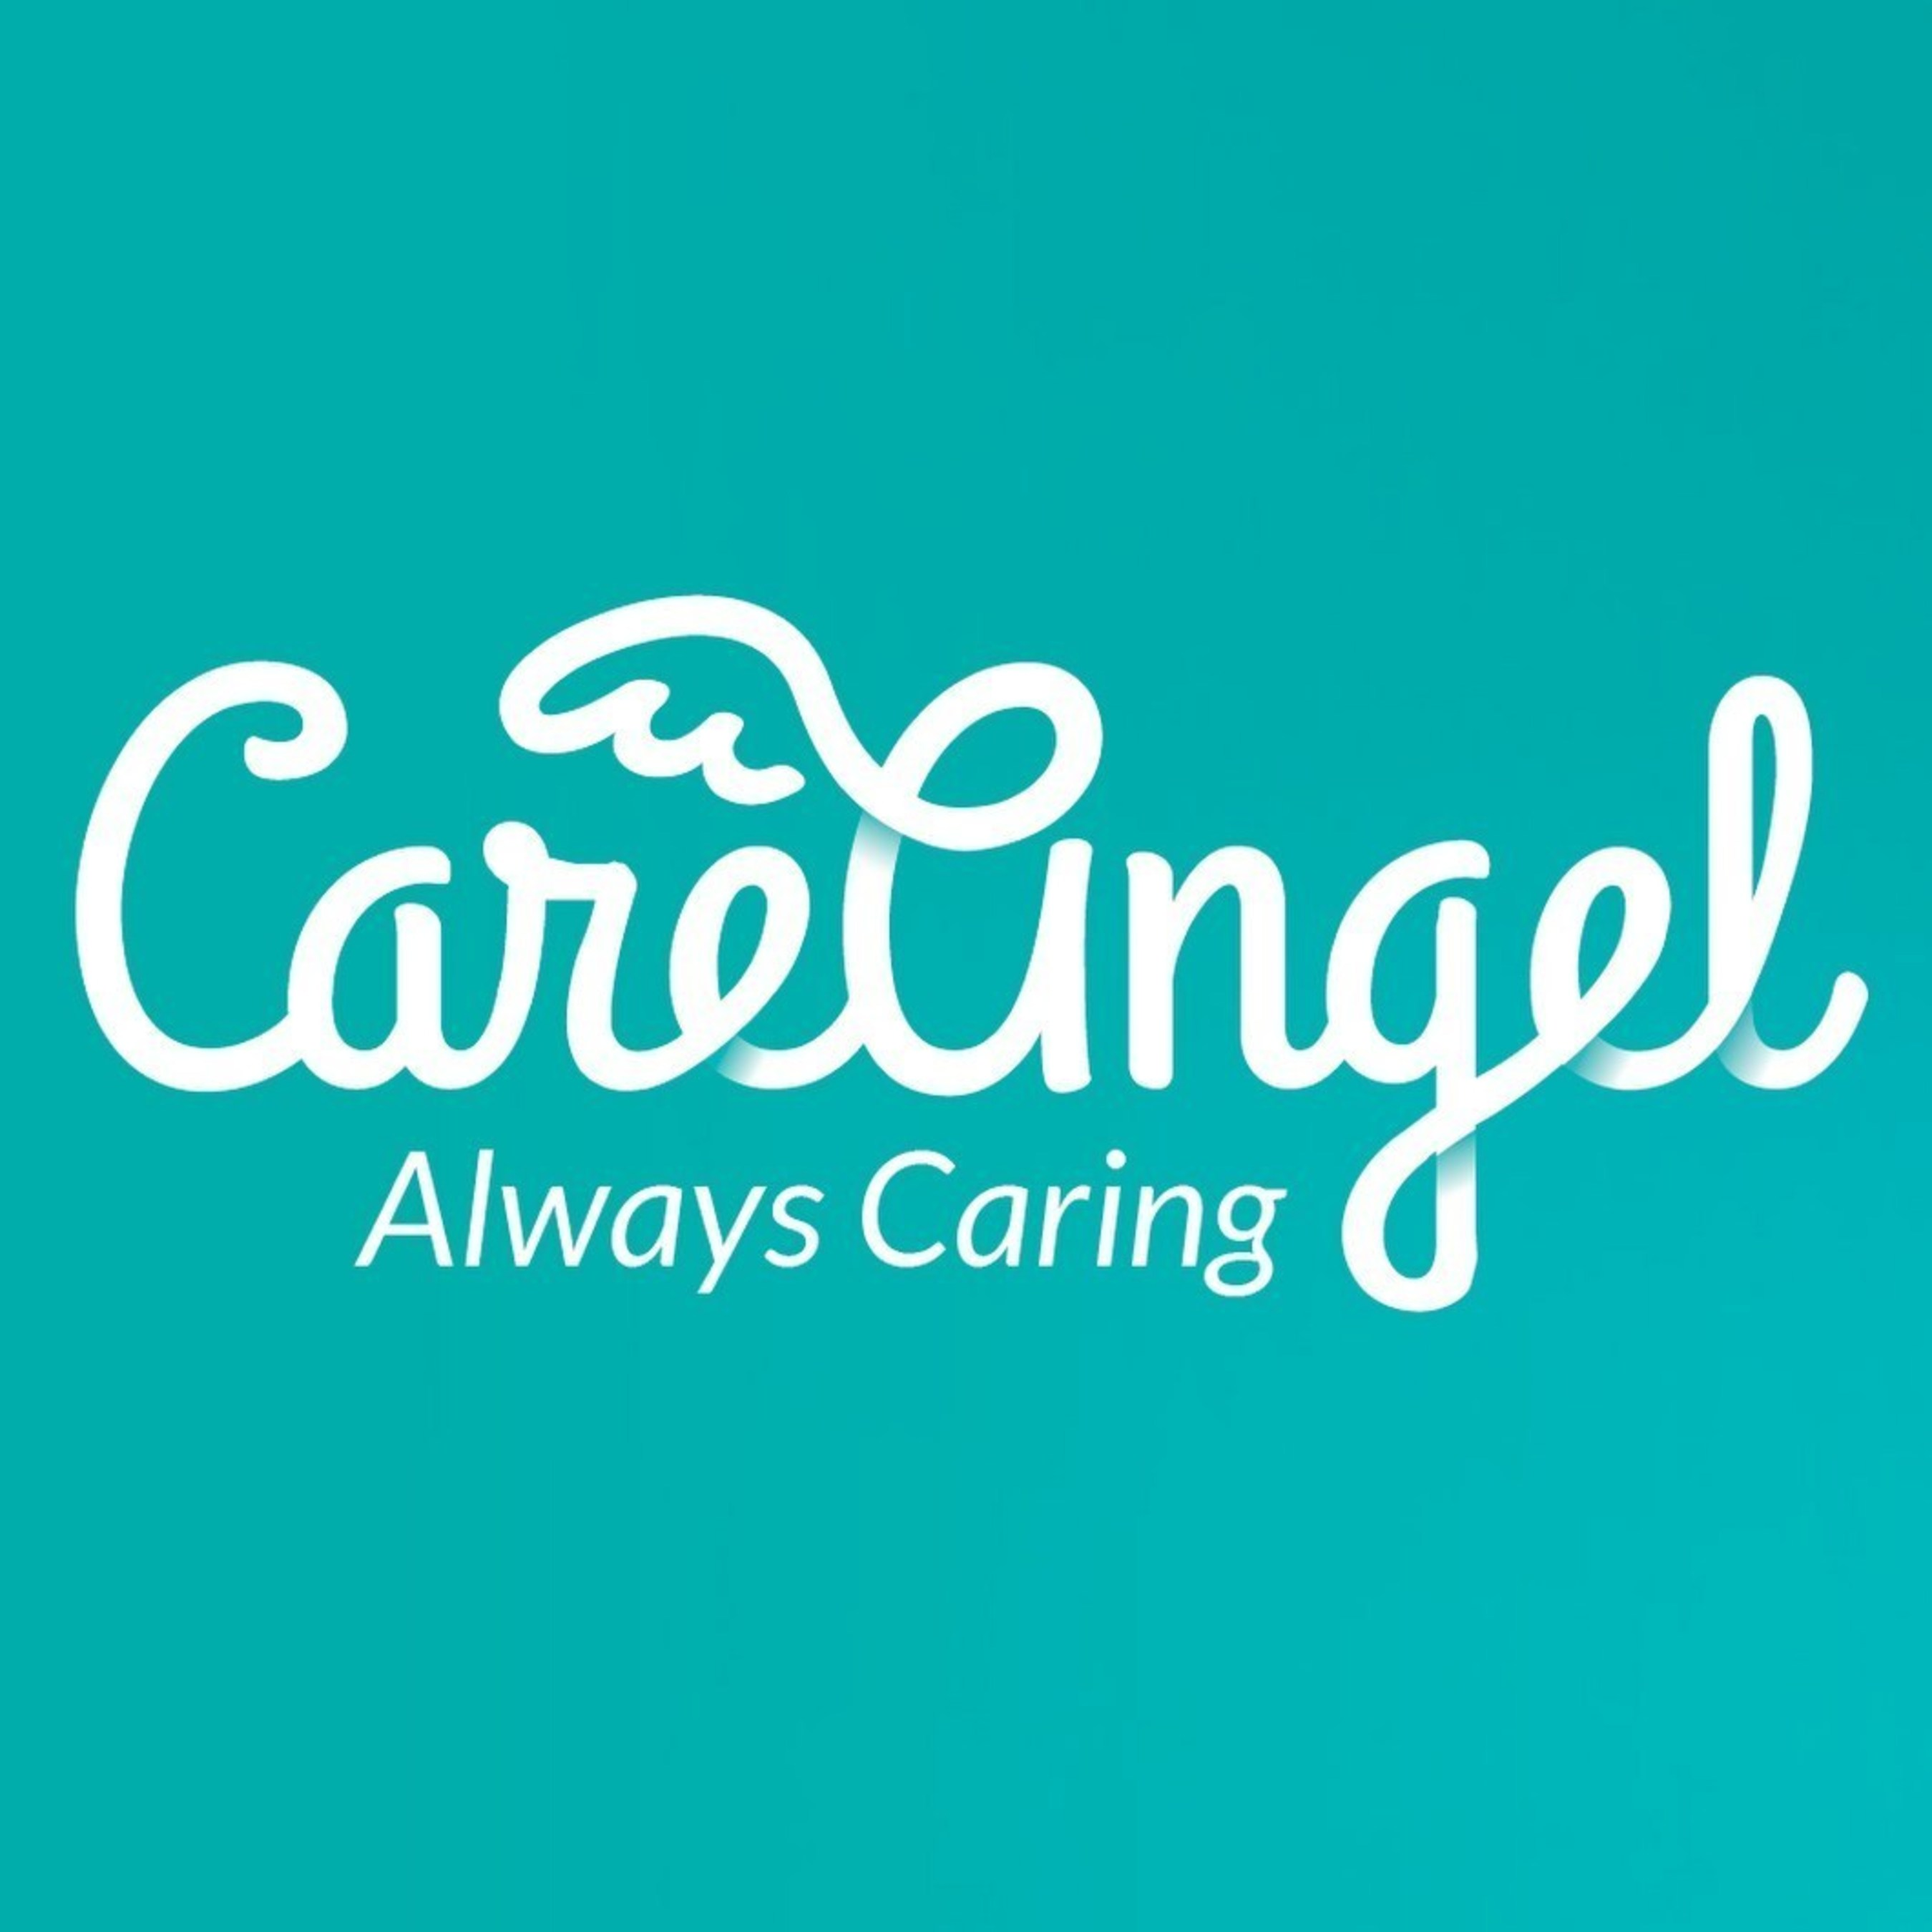 Care Angel's Patent-Pending Artificial Intelligent Caregiver, ANGEL, Wins People's Choice Award